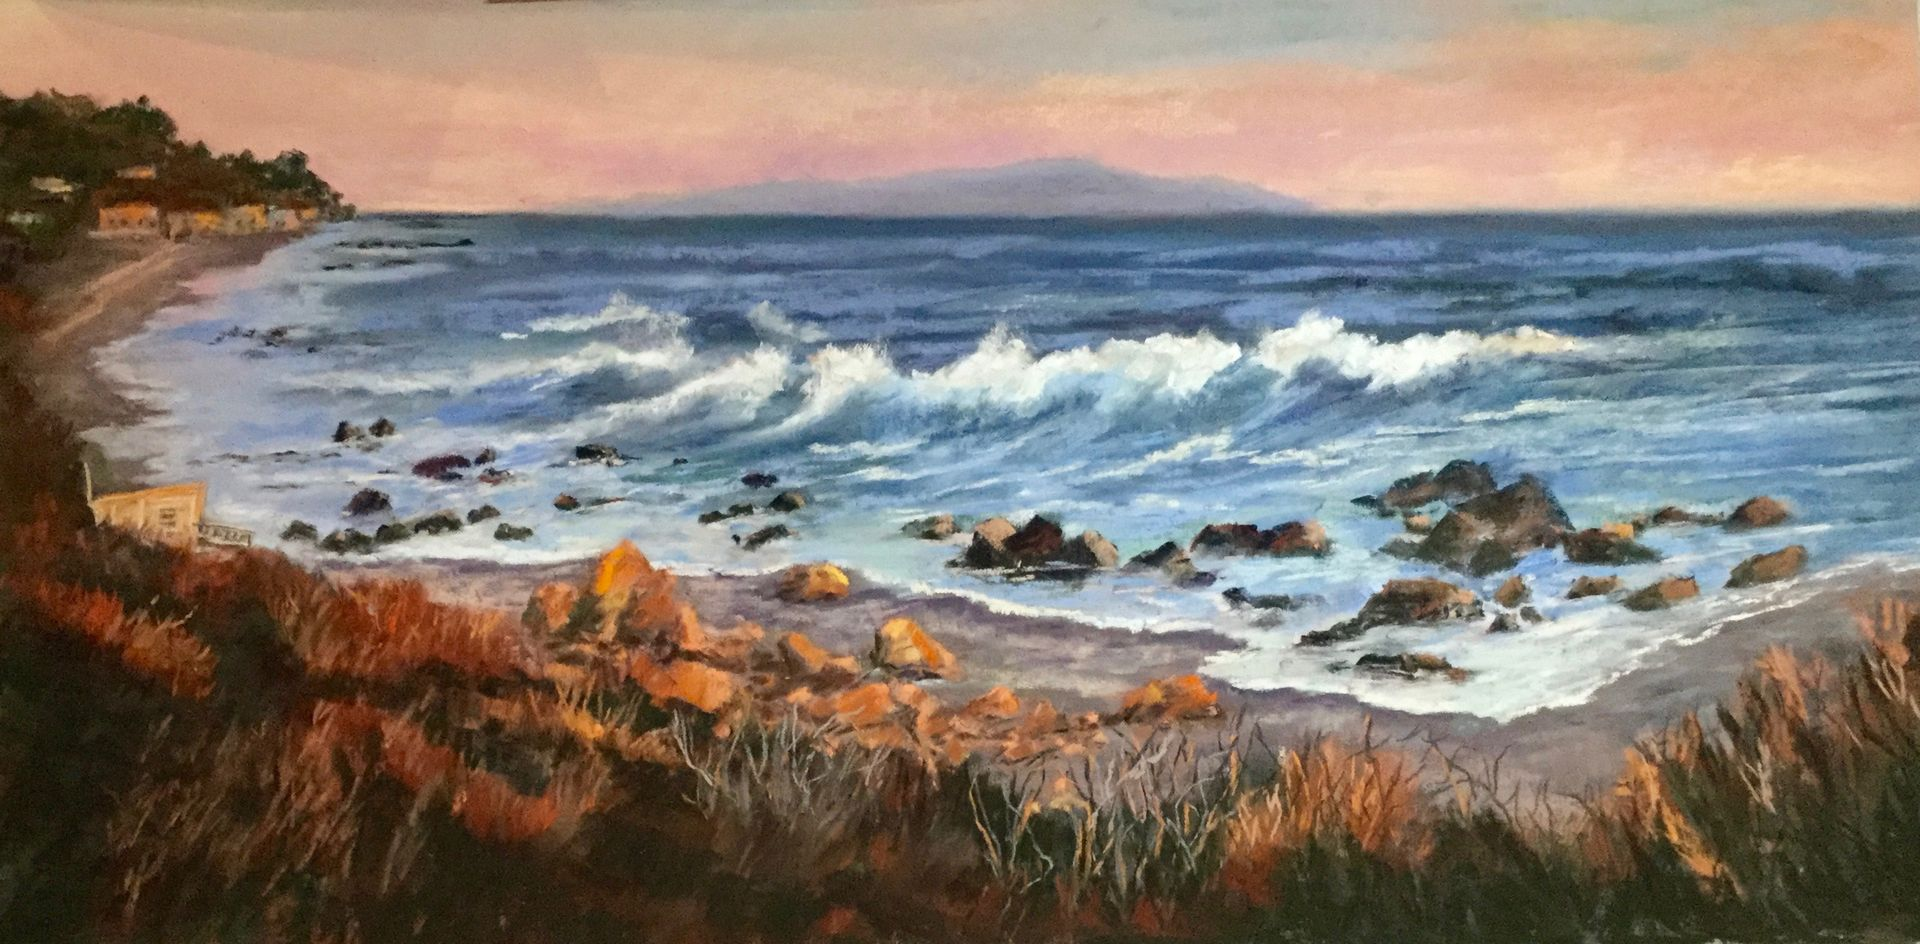 Golden Rocks at the Sea by Linda Melber